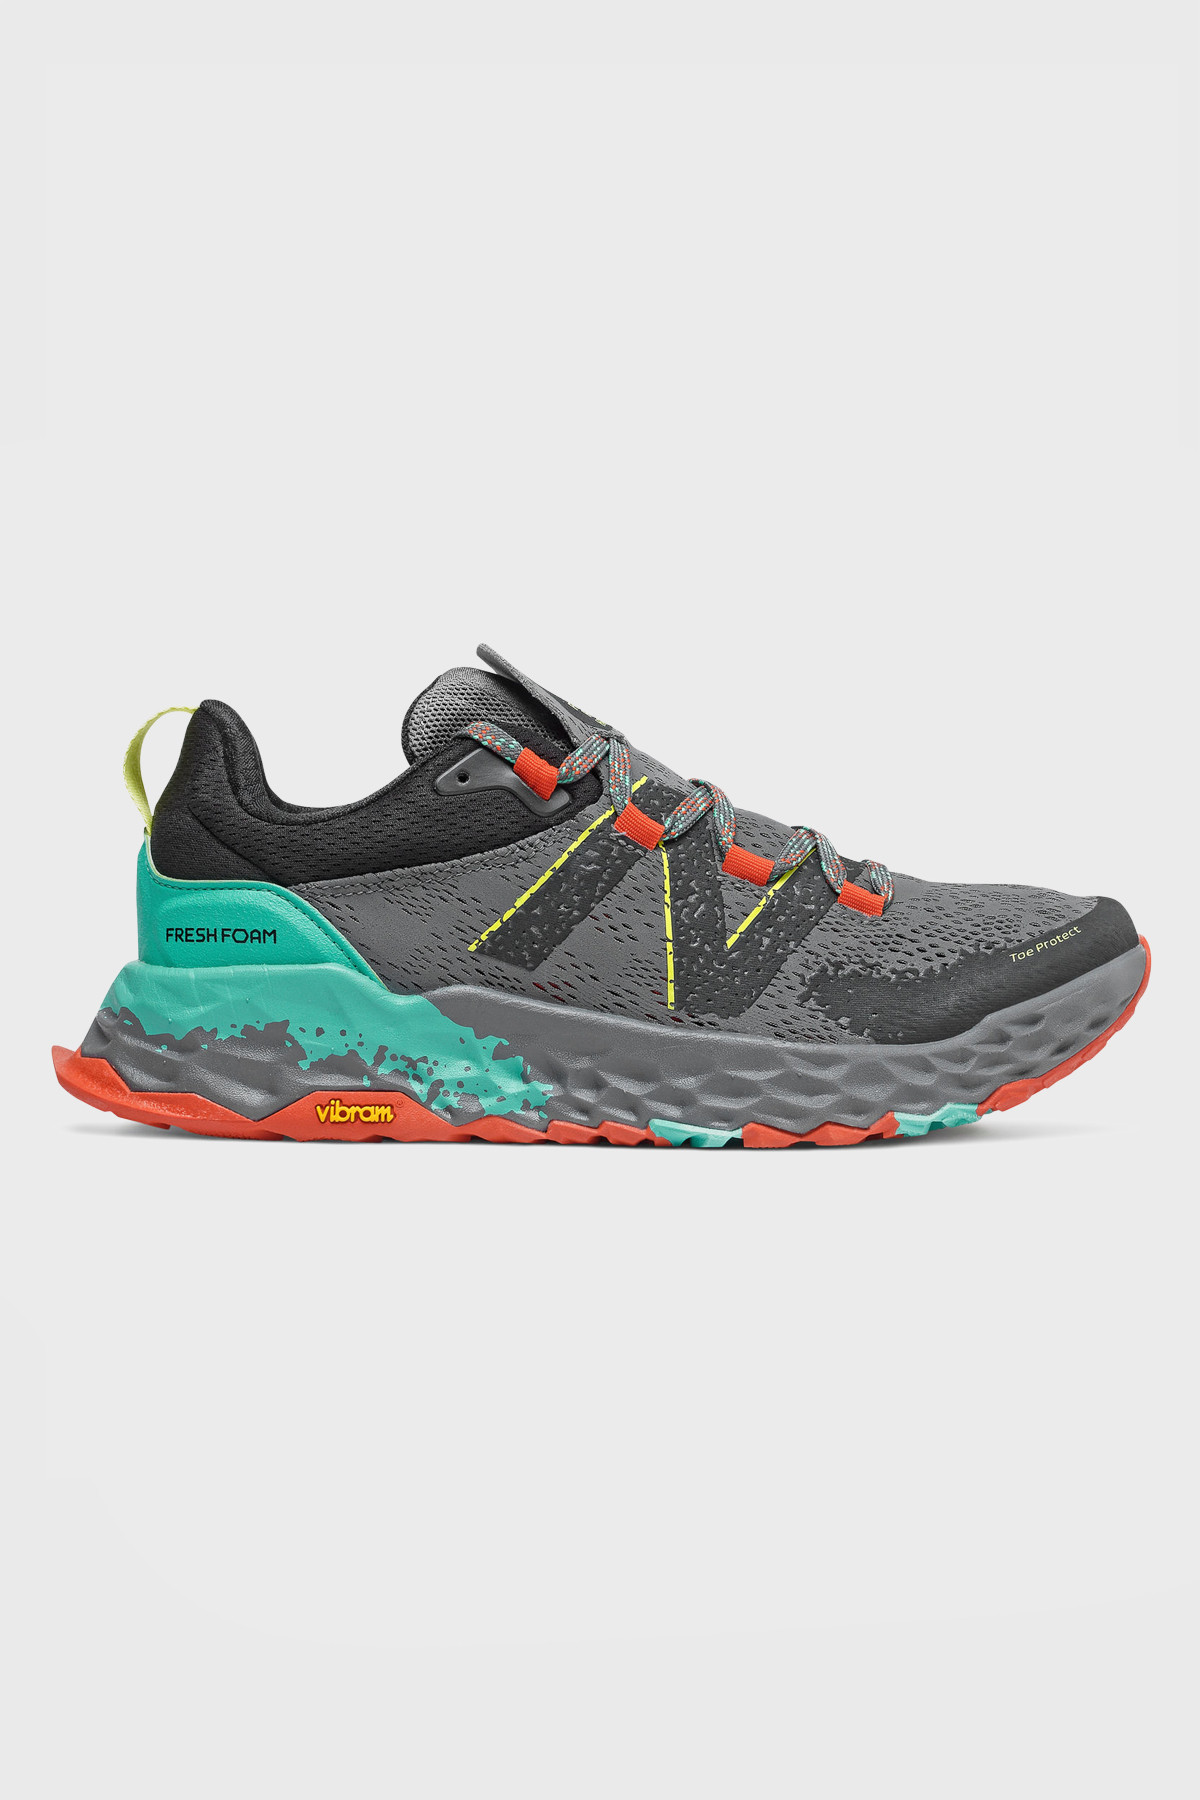 New Balance - Fresh Foam Hierro V5 - Lead with Tidepool